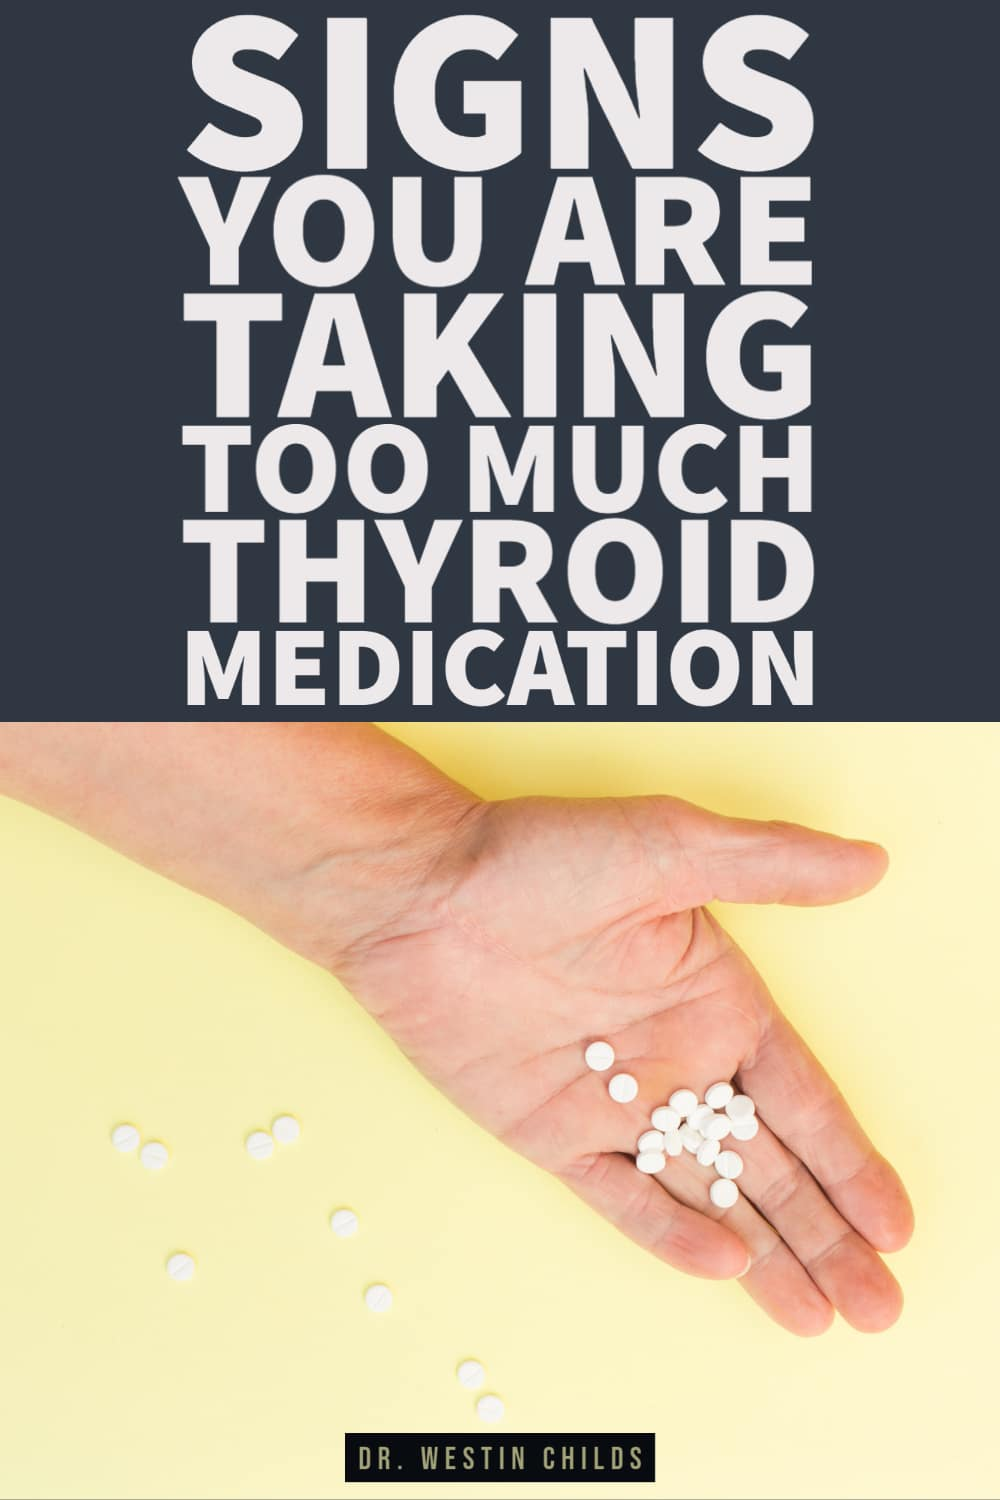 signs you are taking too much thyroid medication for your body